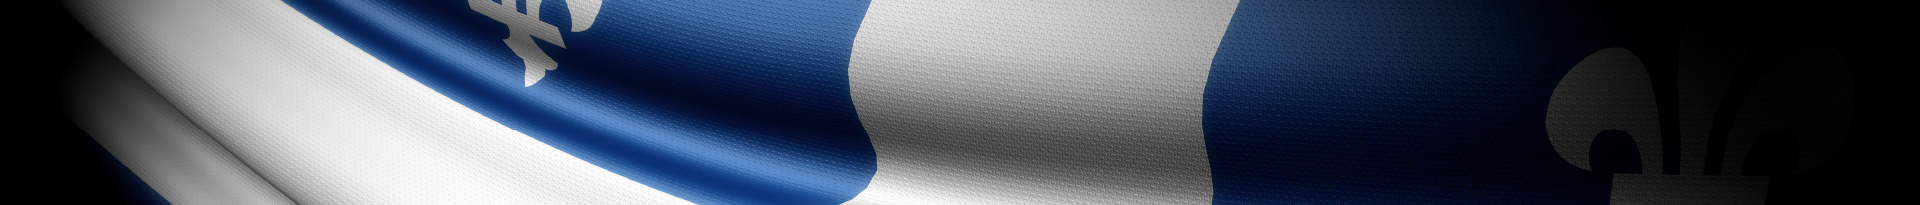 Banner cateogry image